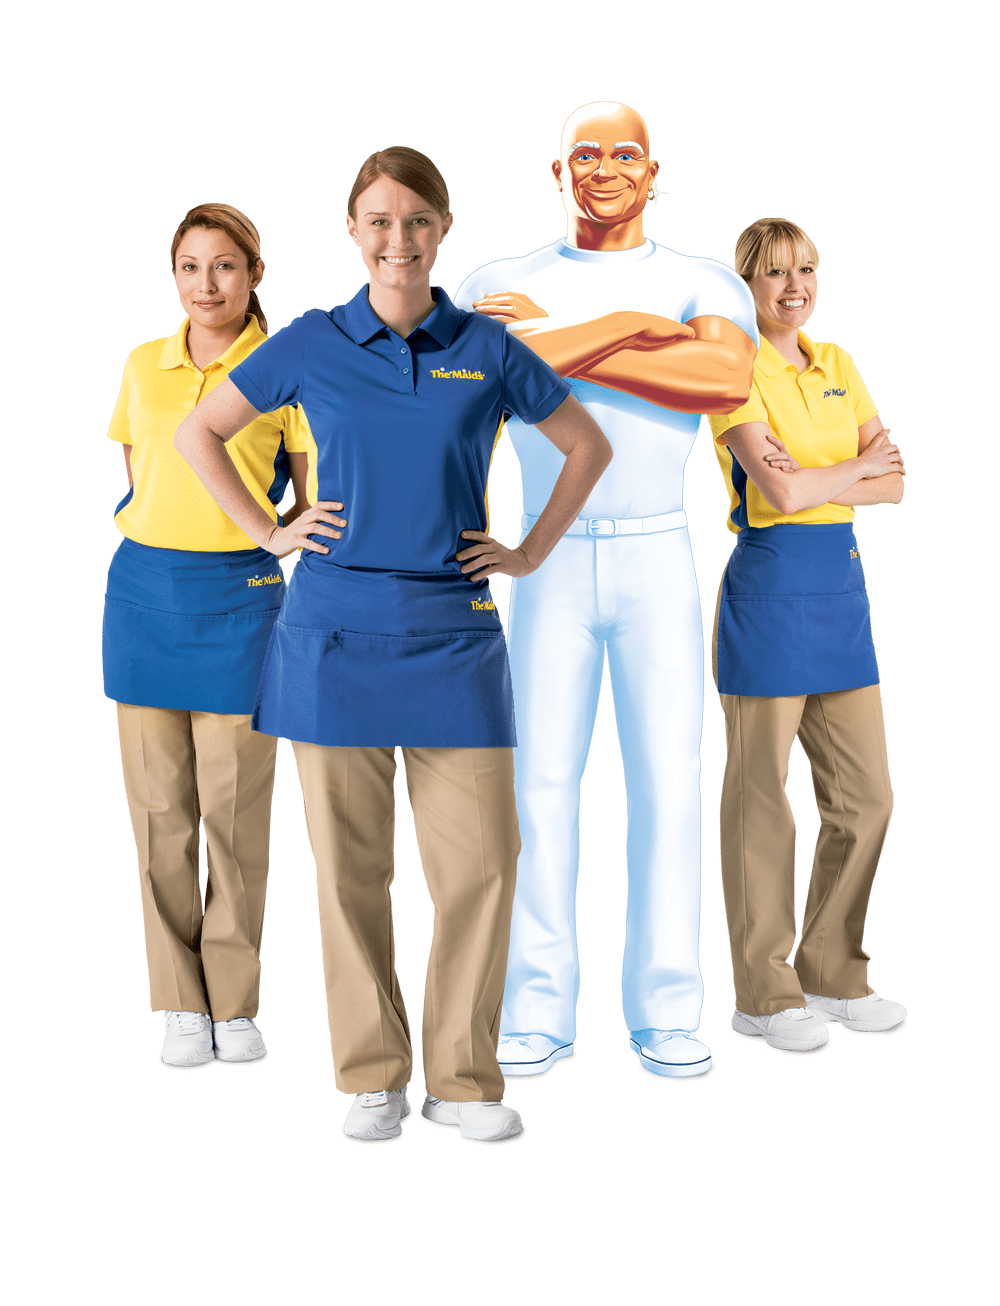 The Maids House Cleaning - The Maids in Essex County Home Cleaning